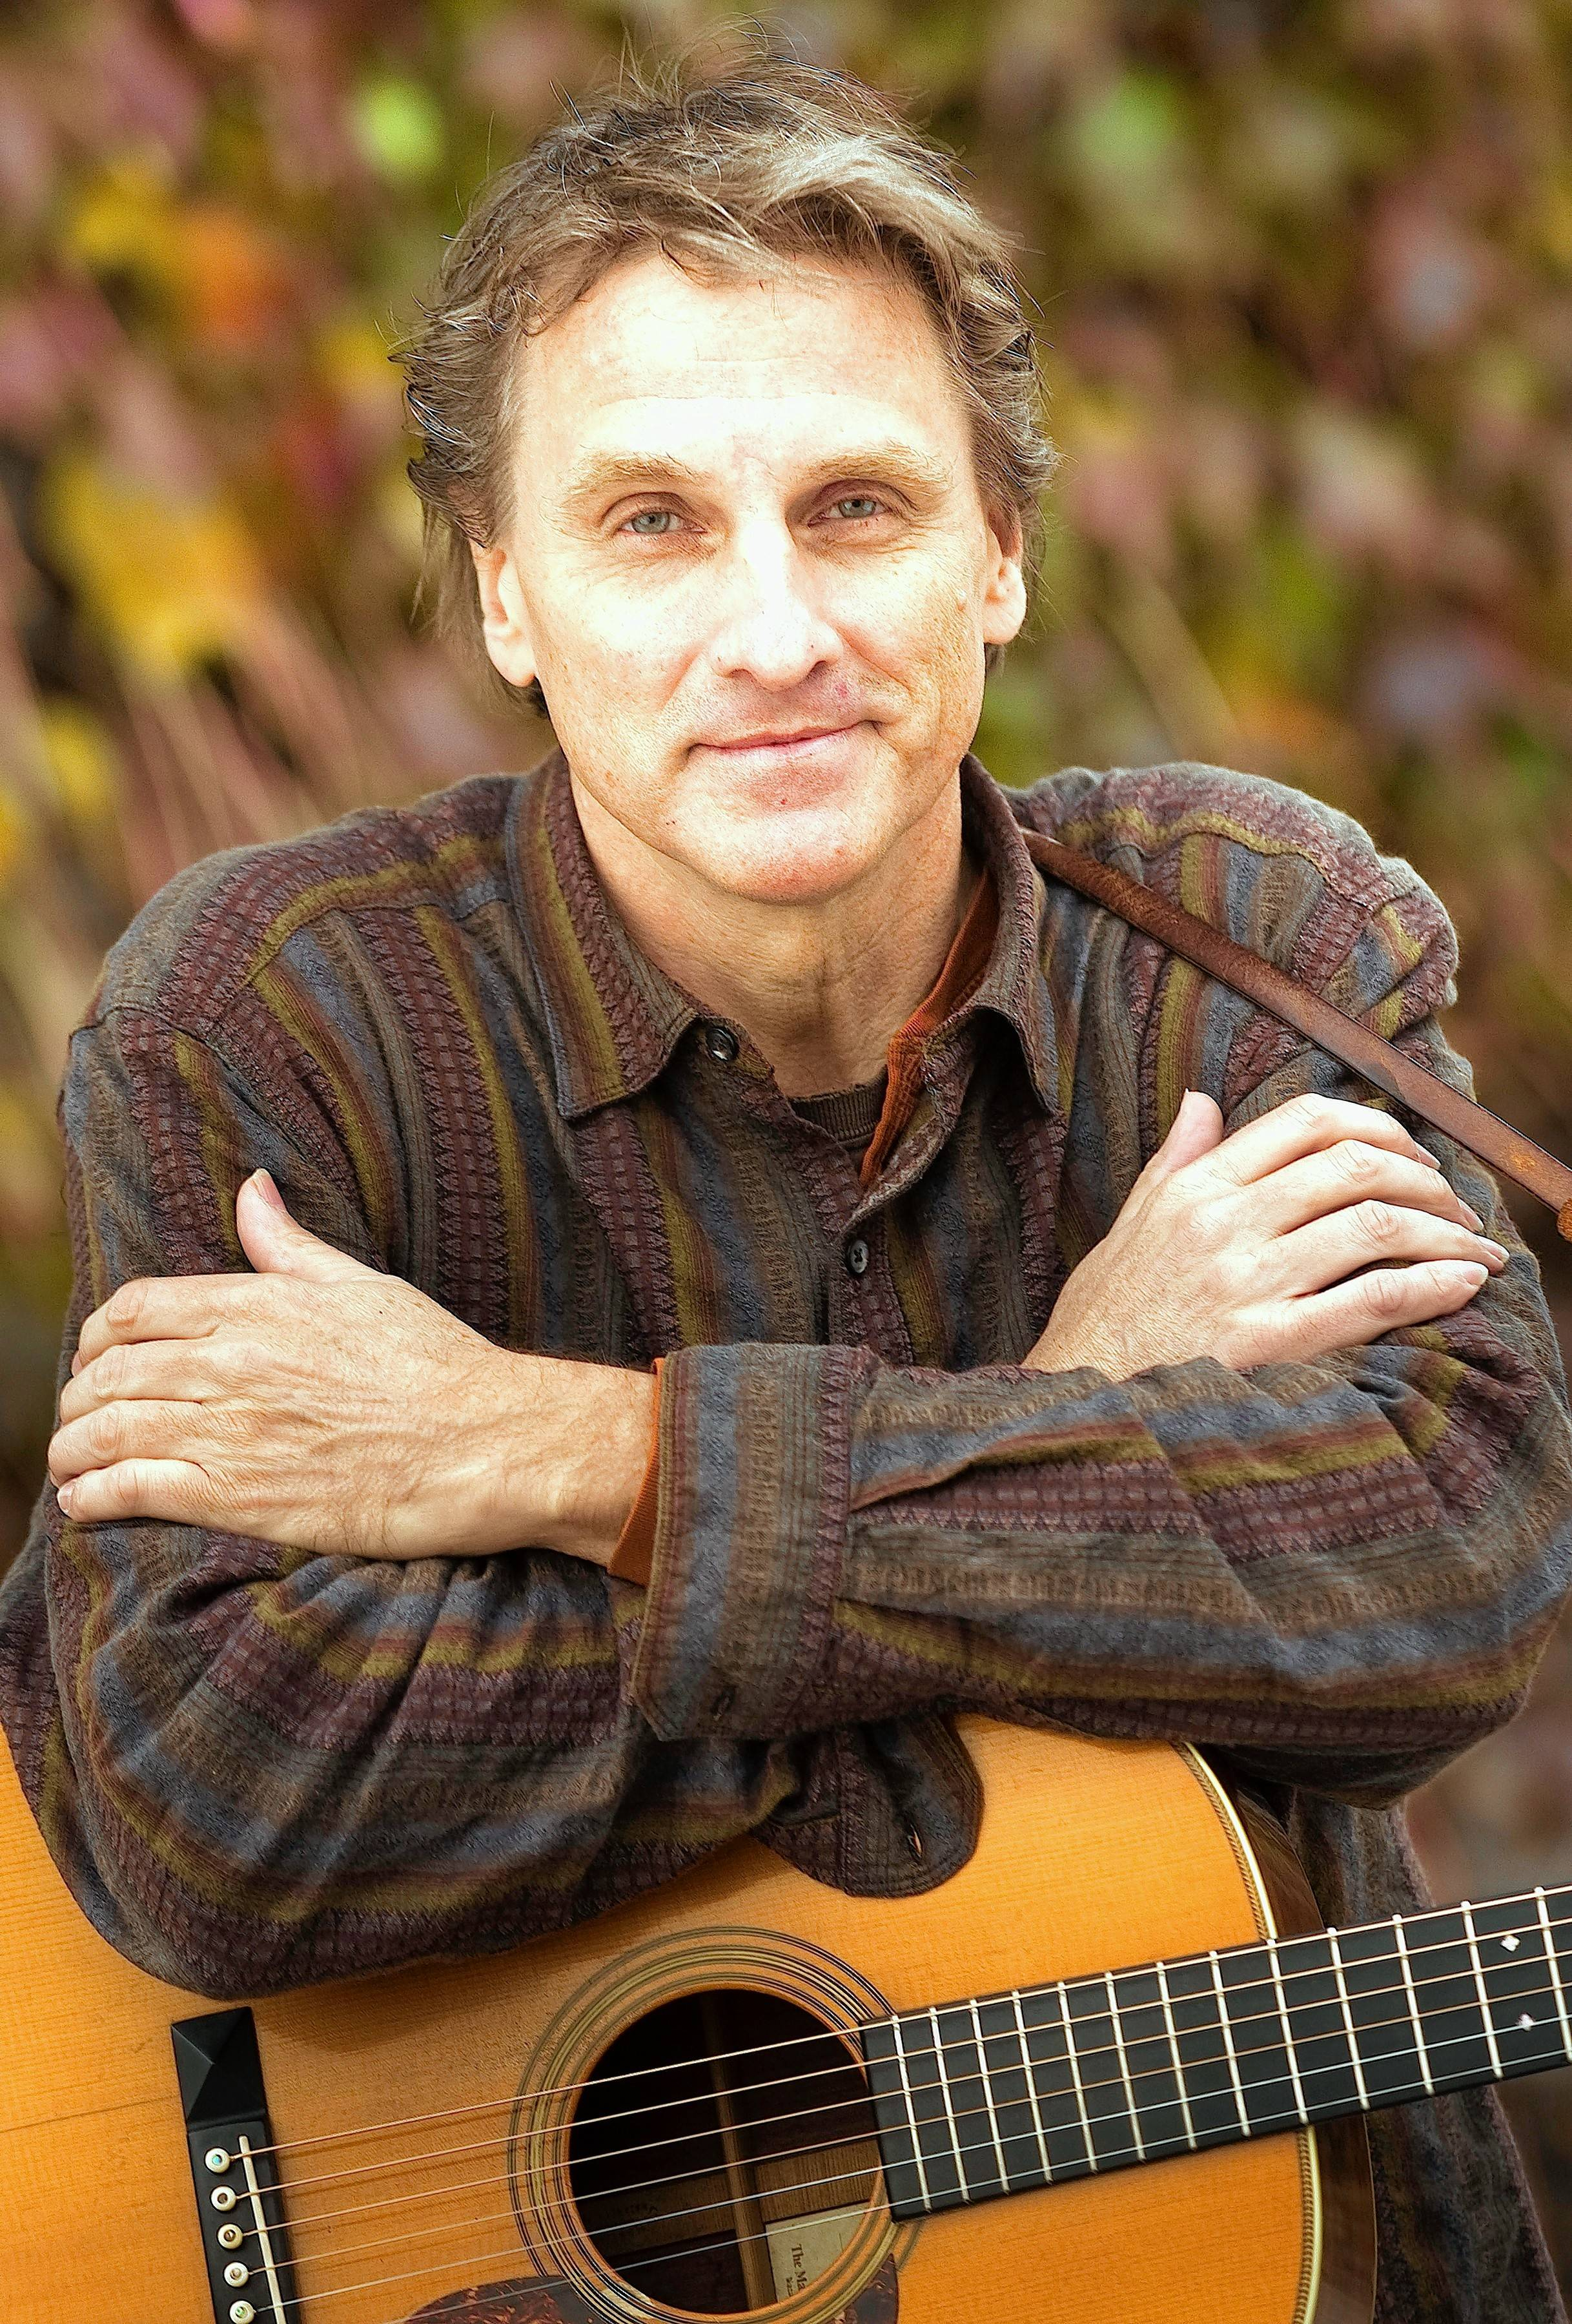 Folk musician Mark Dvorak will perform Sunday, April 14, at the Park Ridge Public Library.